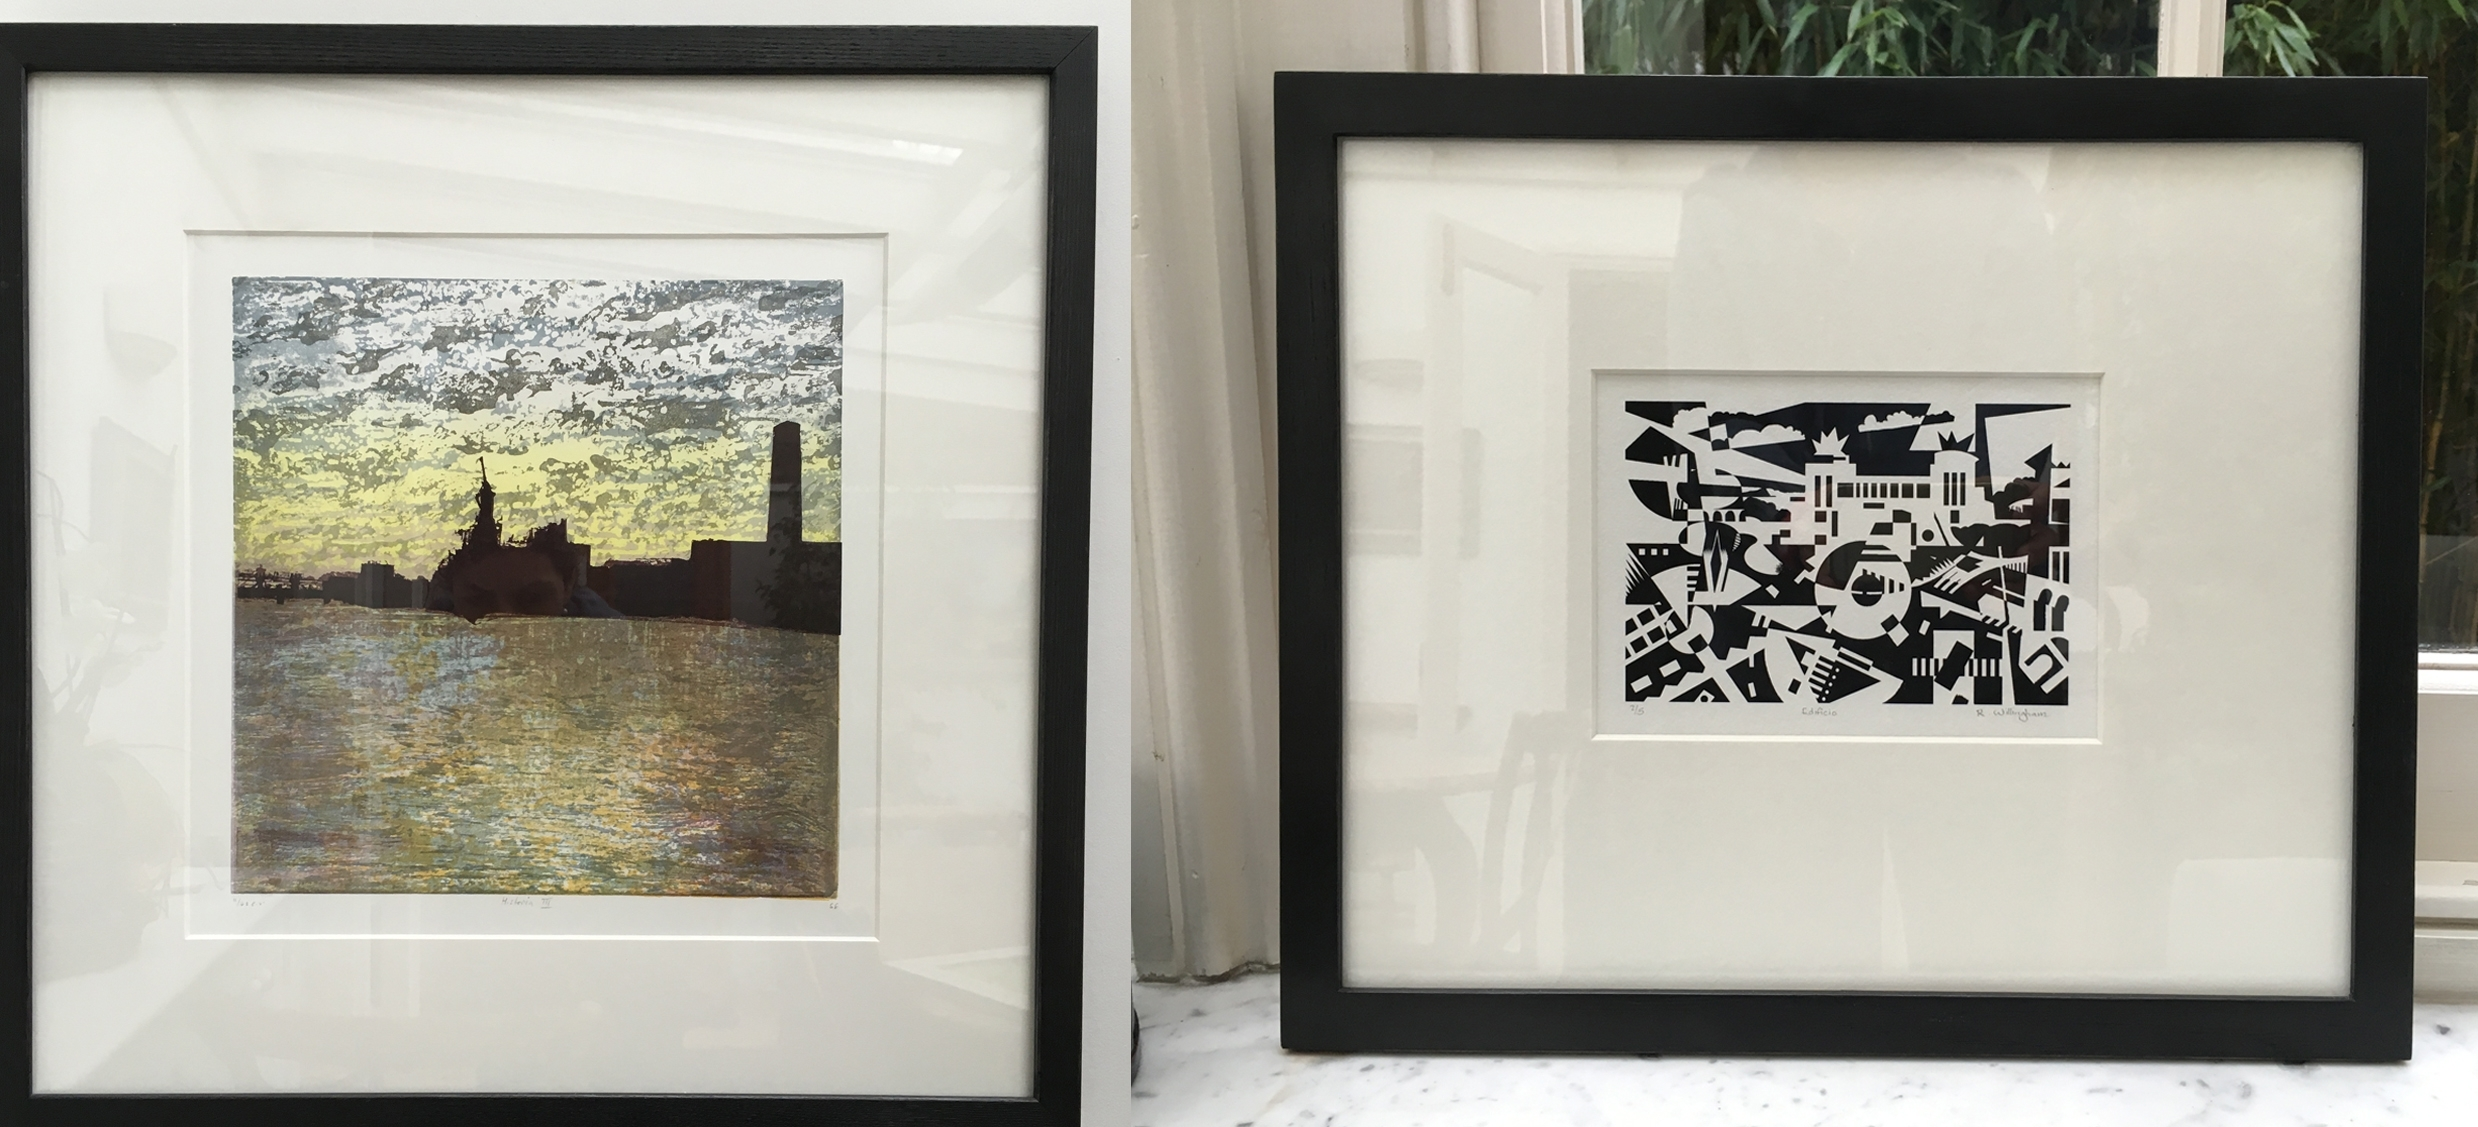 How To Frame Prints – Print Solo Regarding Recent Black Framed Art Prints (View 5 of 15)